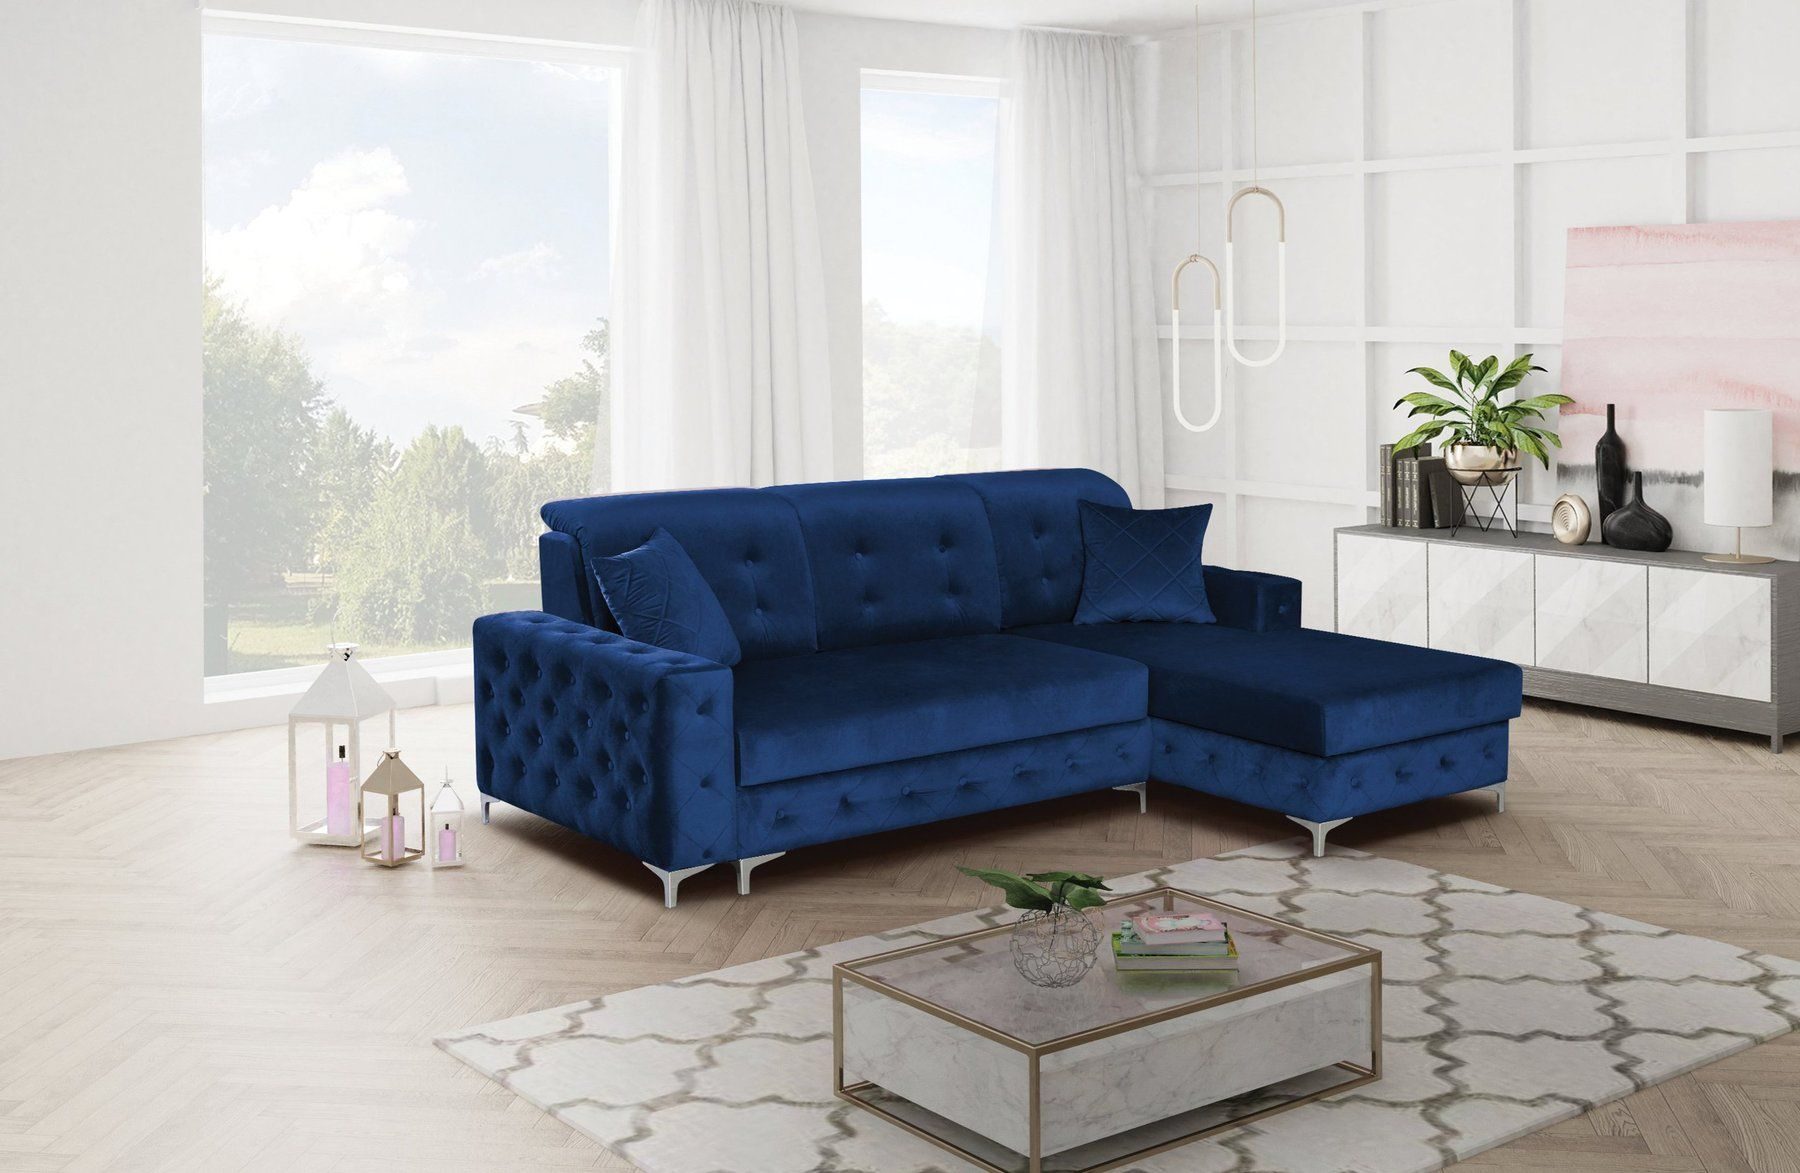 Verso Mini Blue Rf Sectional Sofa In 2020 Sectional Sofa Sectional Sleeper Sofa Sleeper Sectional